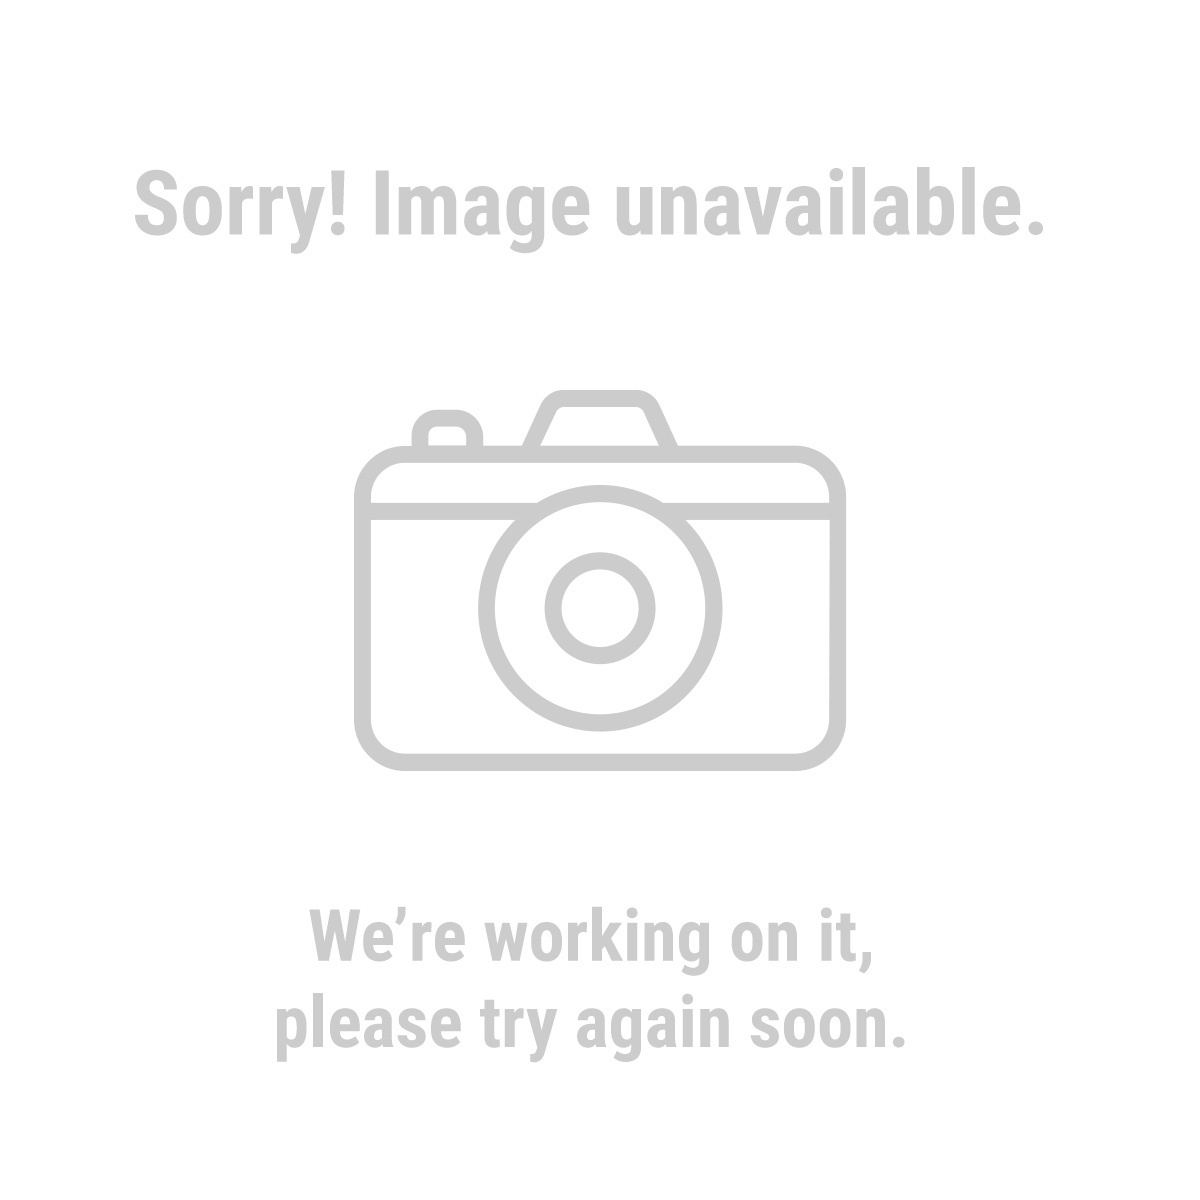 Greenwood® 62177 Trigger Spray Nozzle